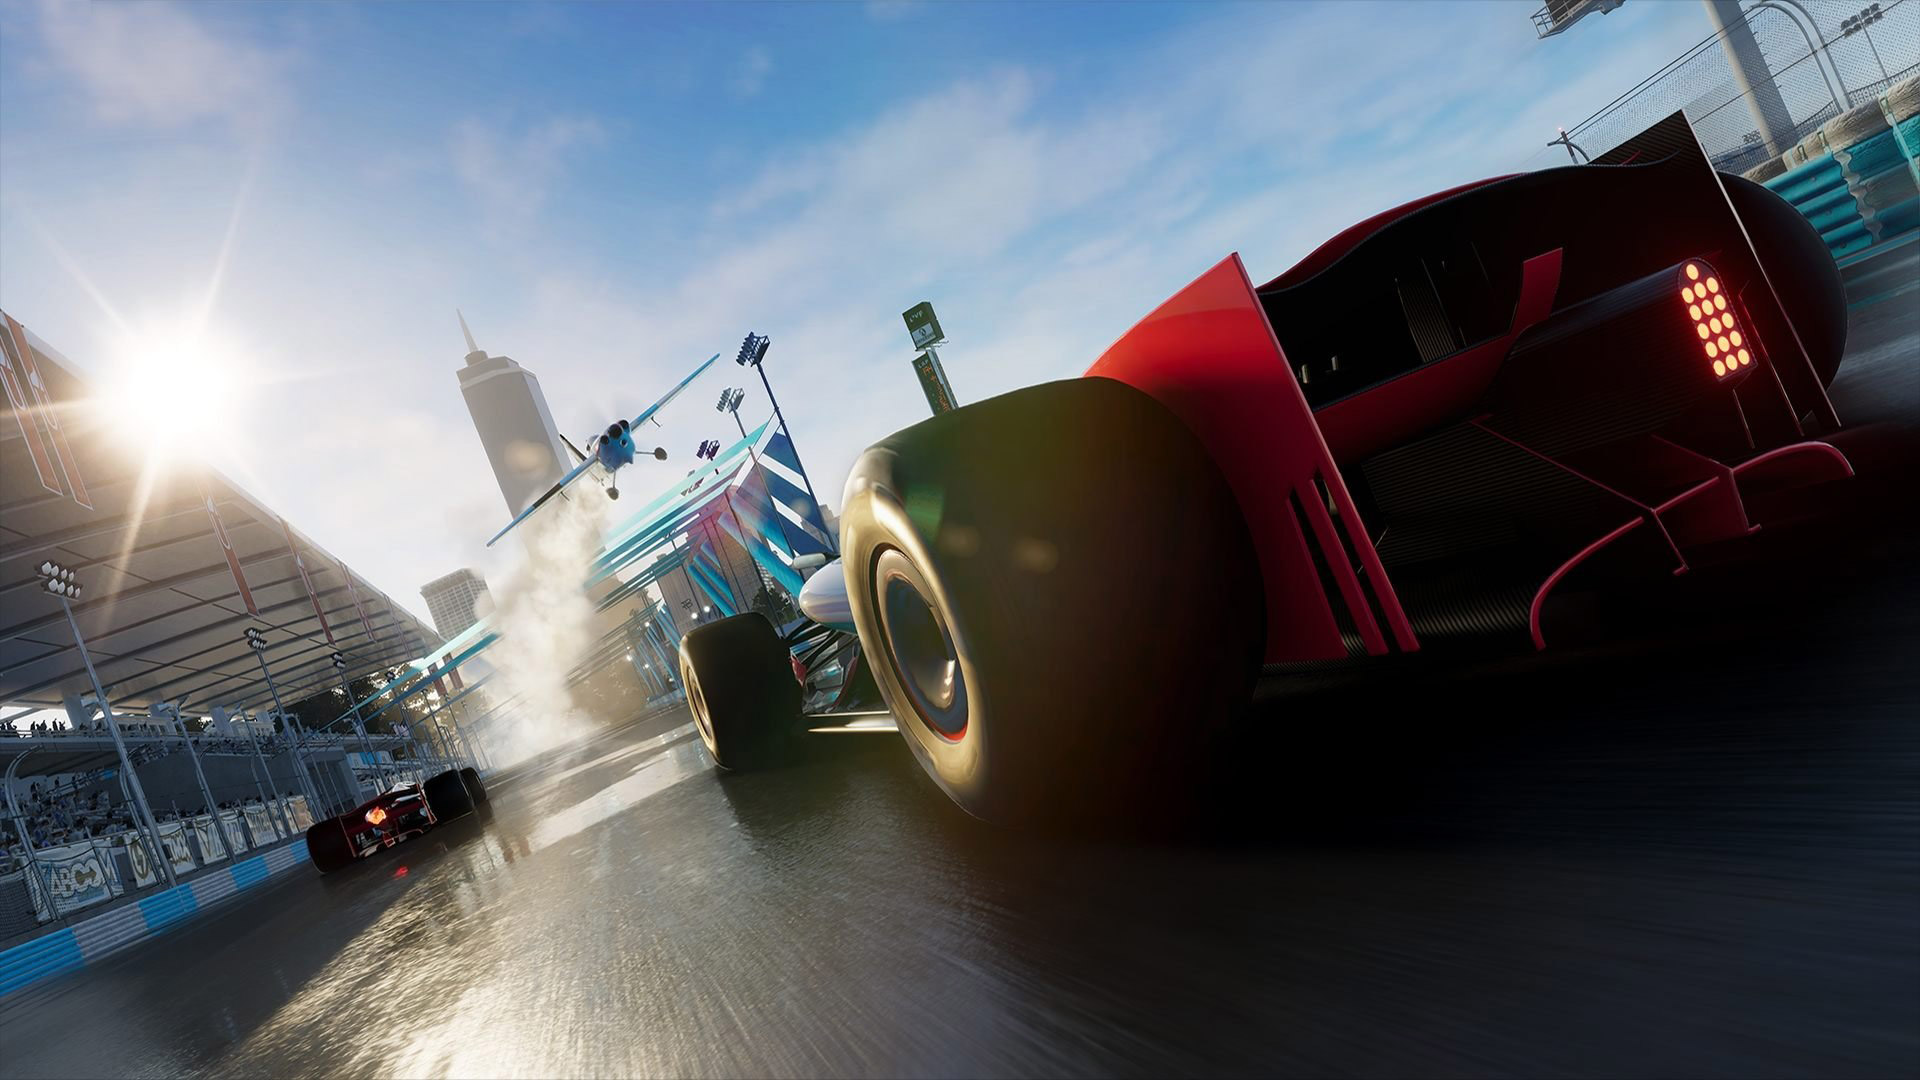 Free The Crew 2 Wallpaper in 1920x1080